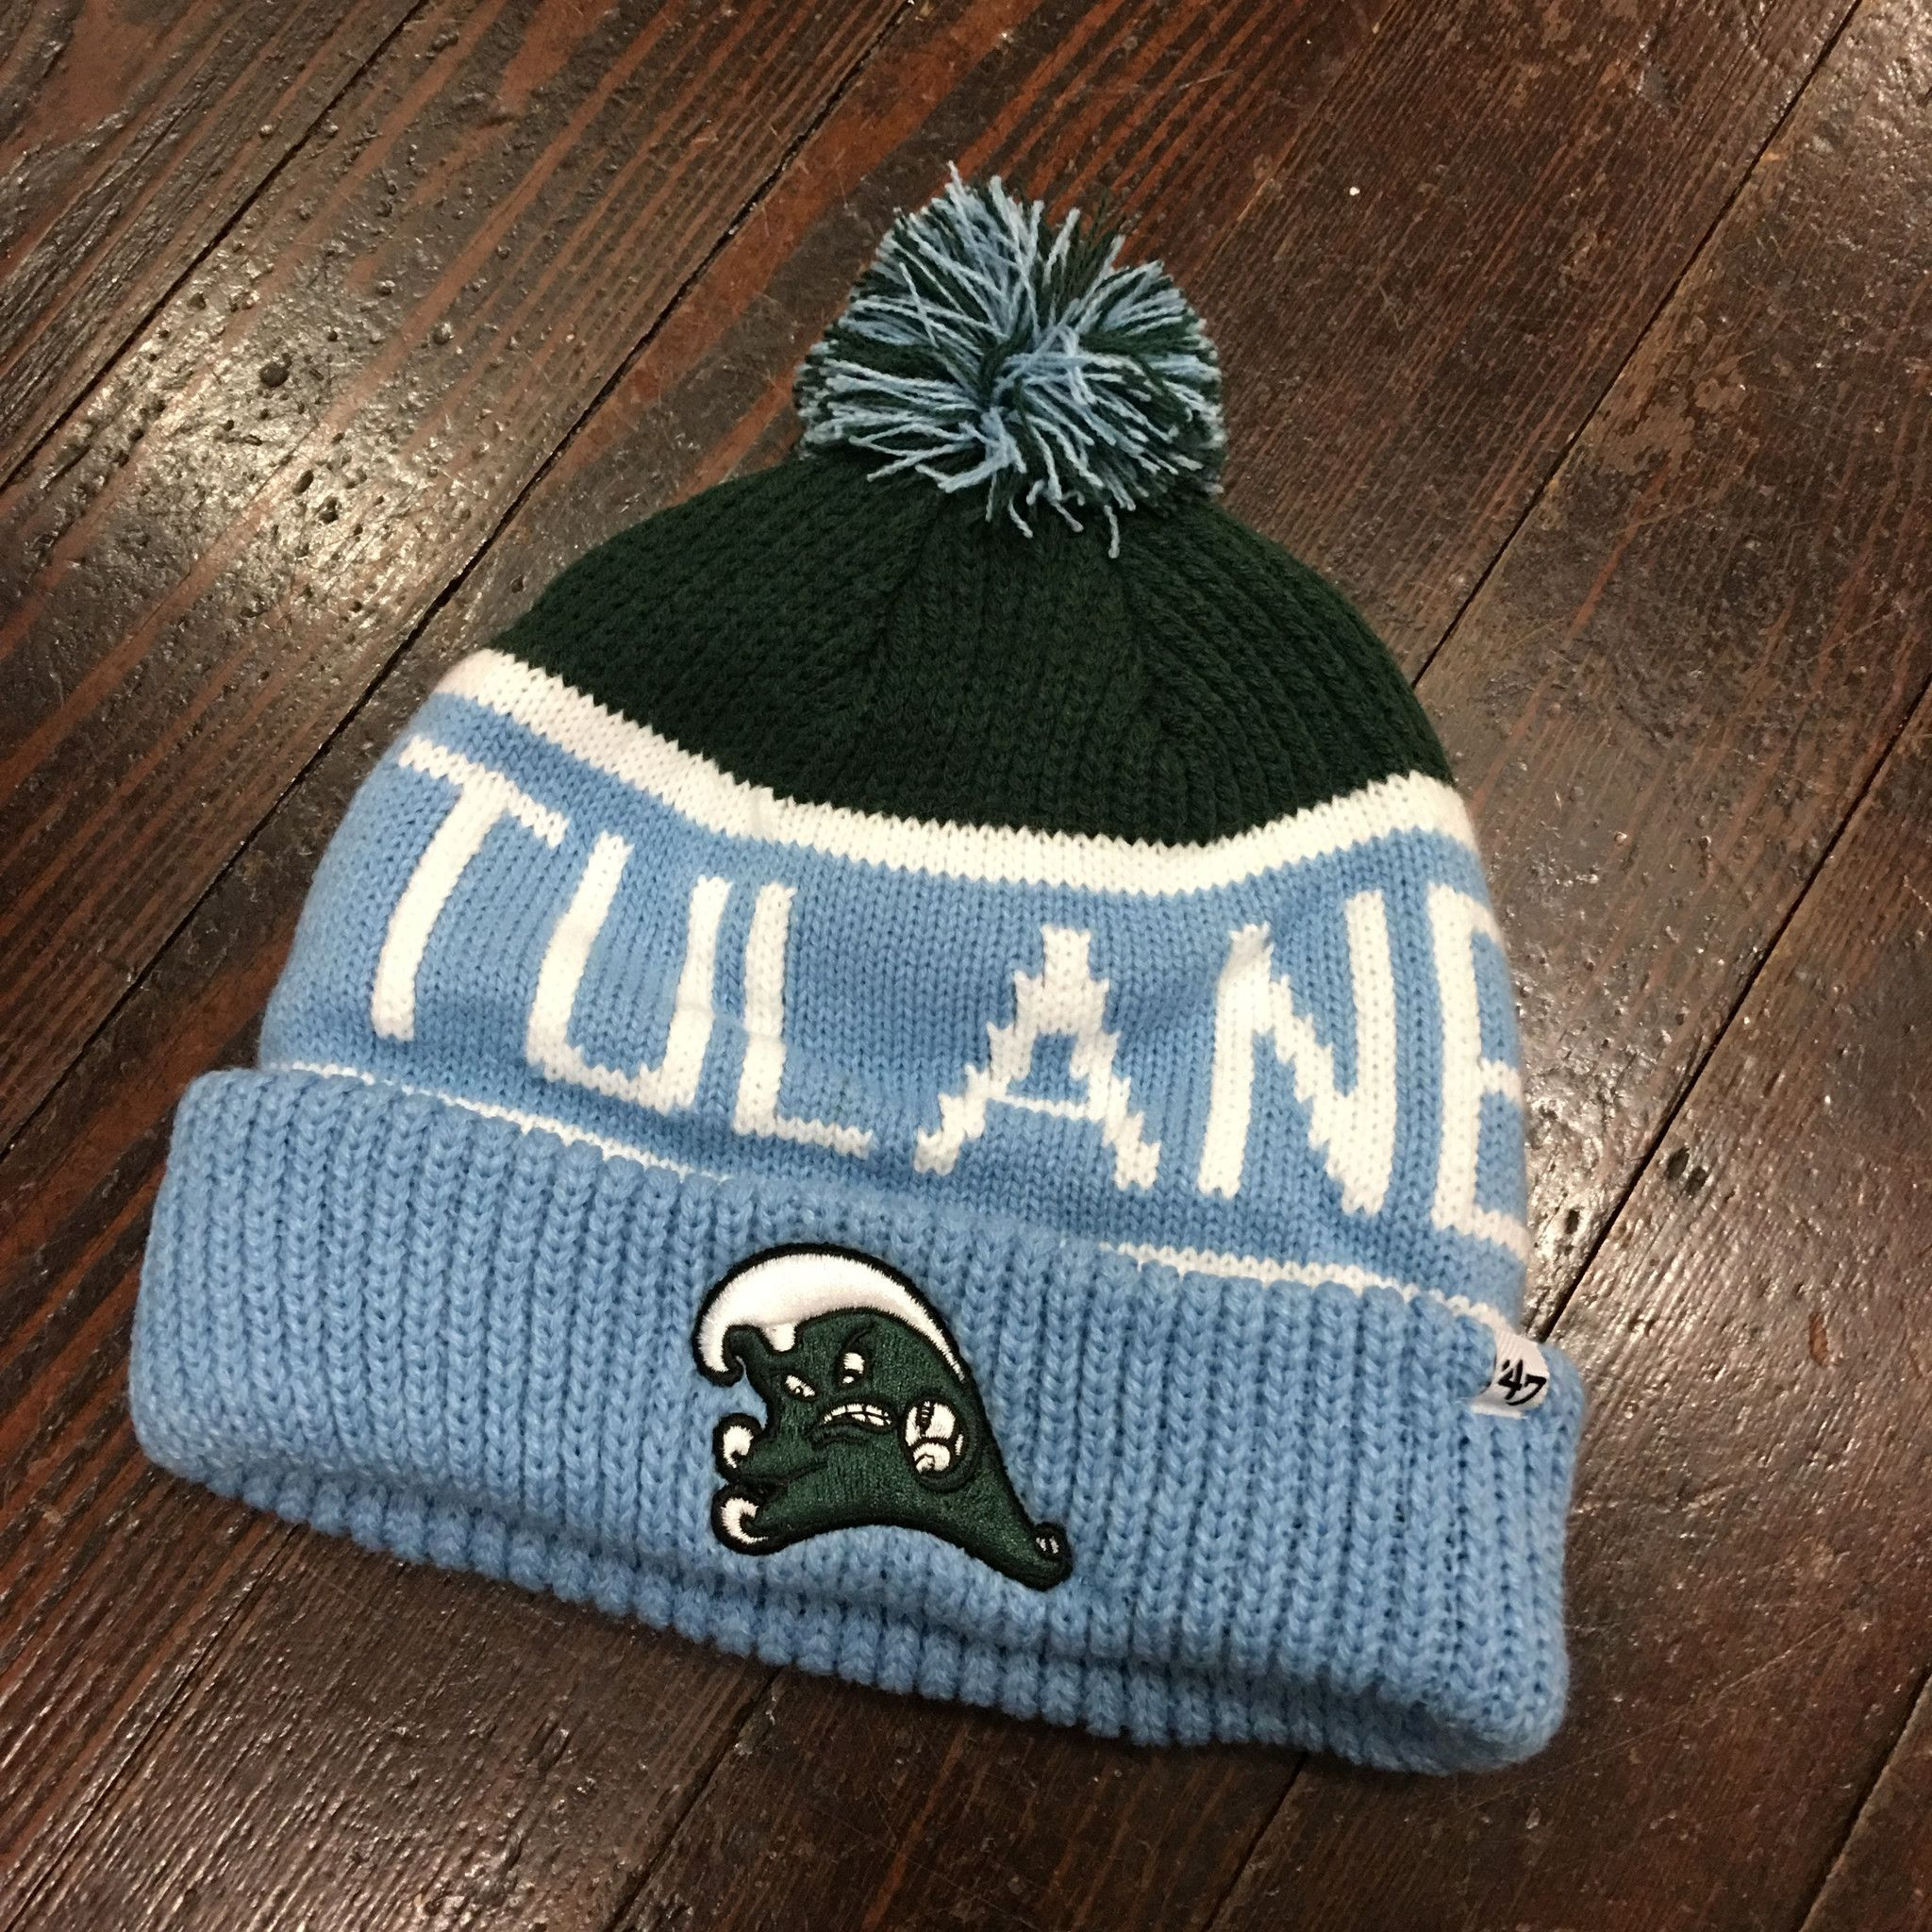 buy online 9c7da 6a0ff germany tulane knit top e21fb 1afce  buy tulane angry wave vintage pom pom  beanie ea195 73d02